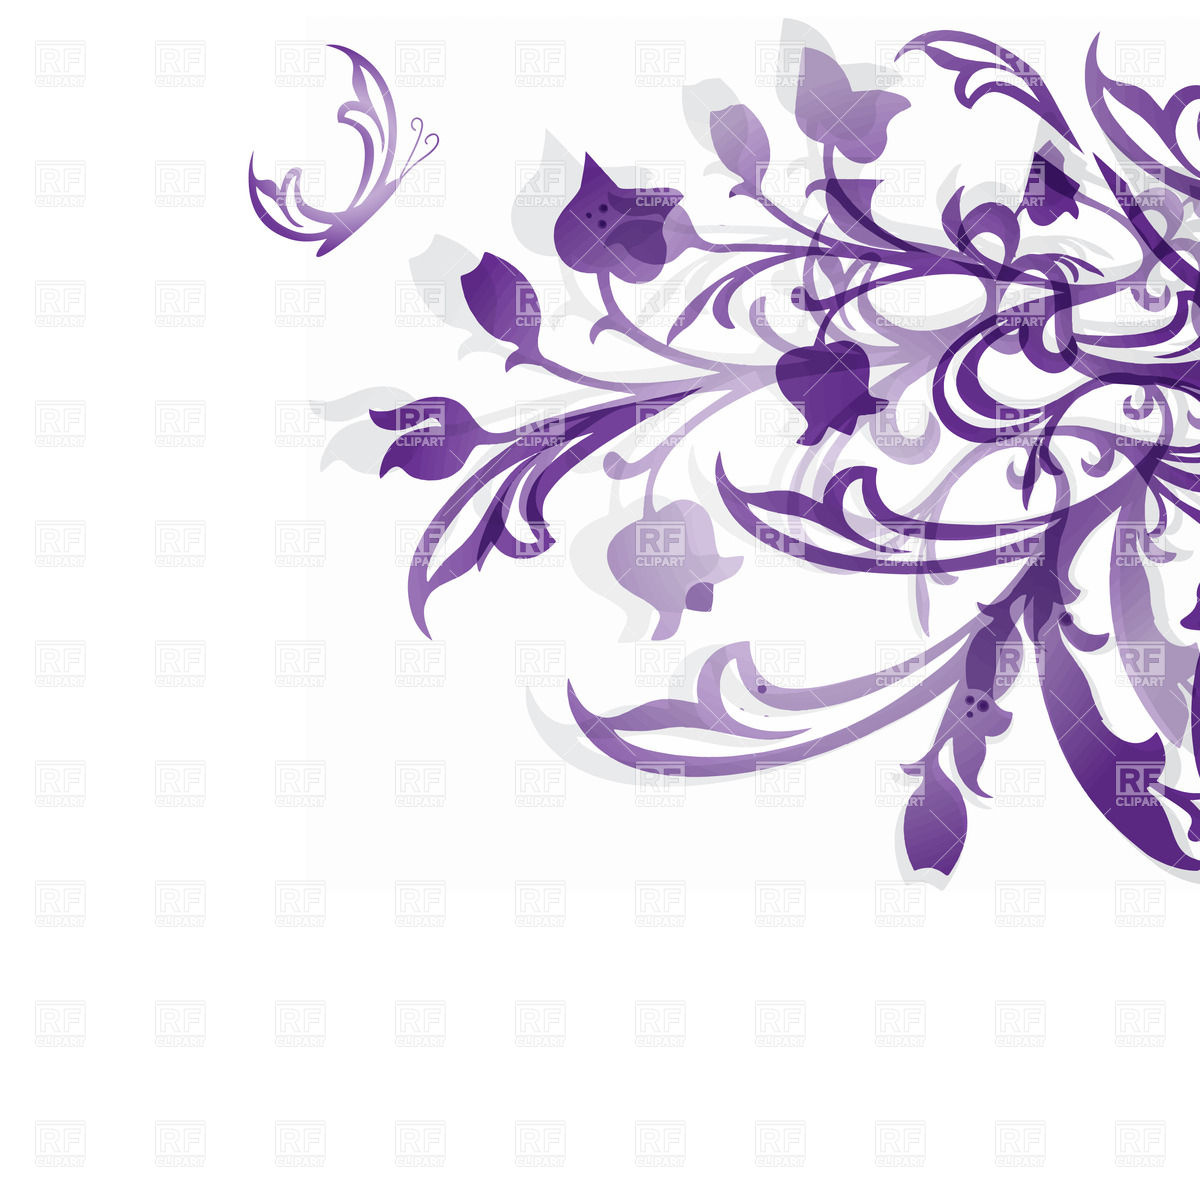 Violet hand drawn flowers on white background Vector Image #23610.